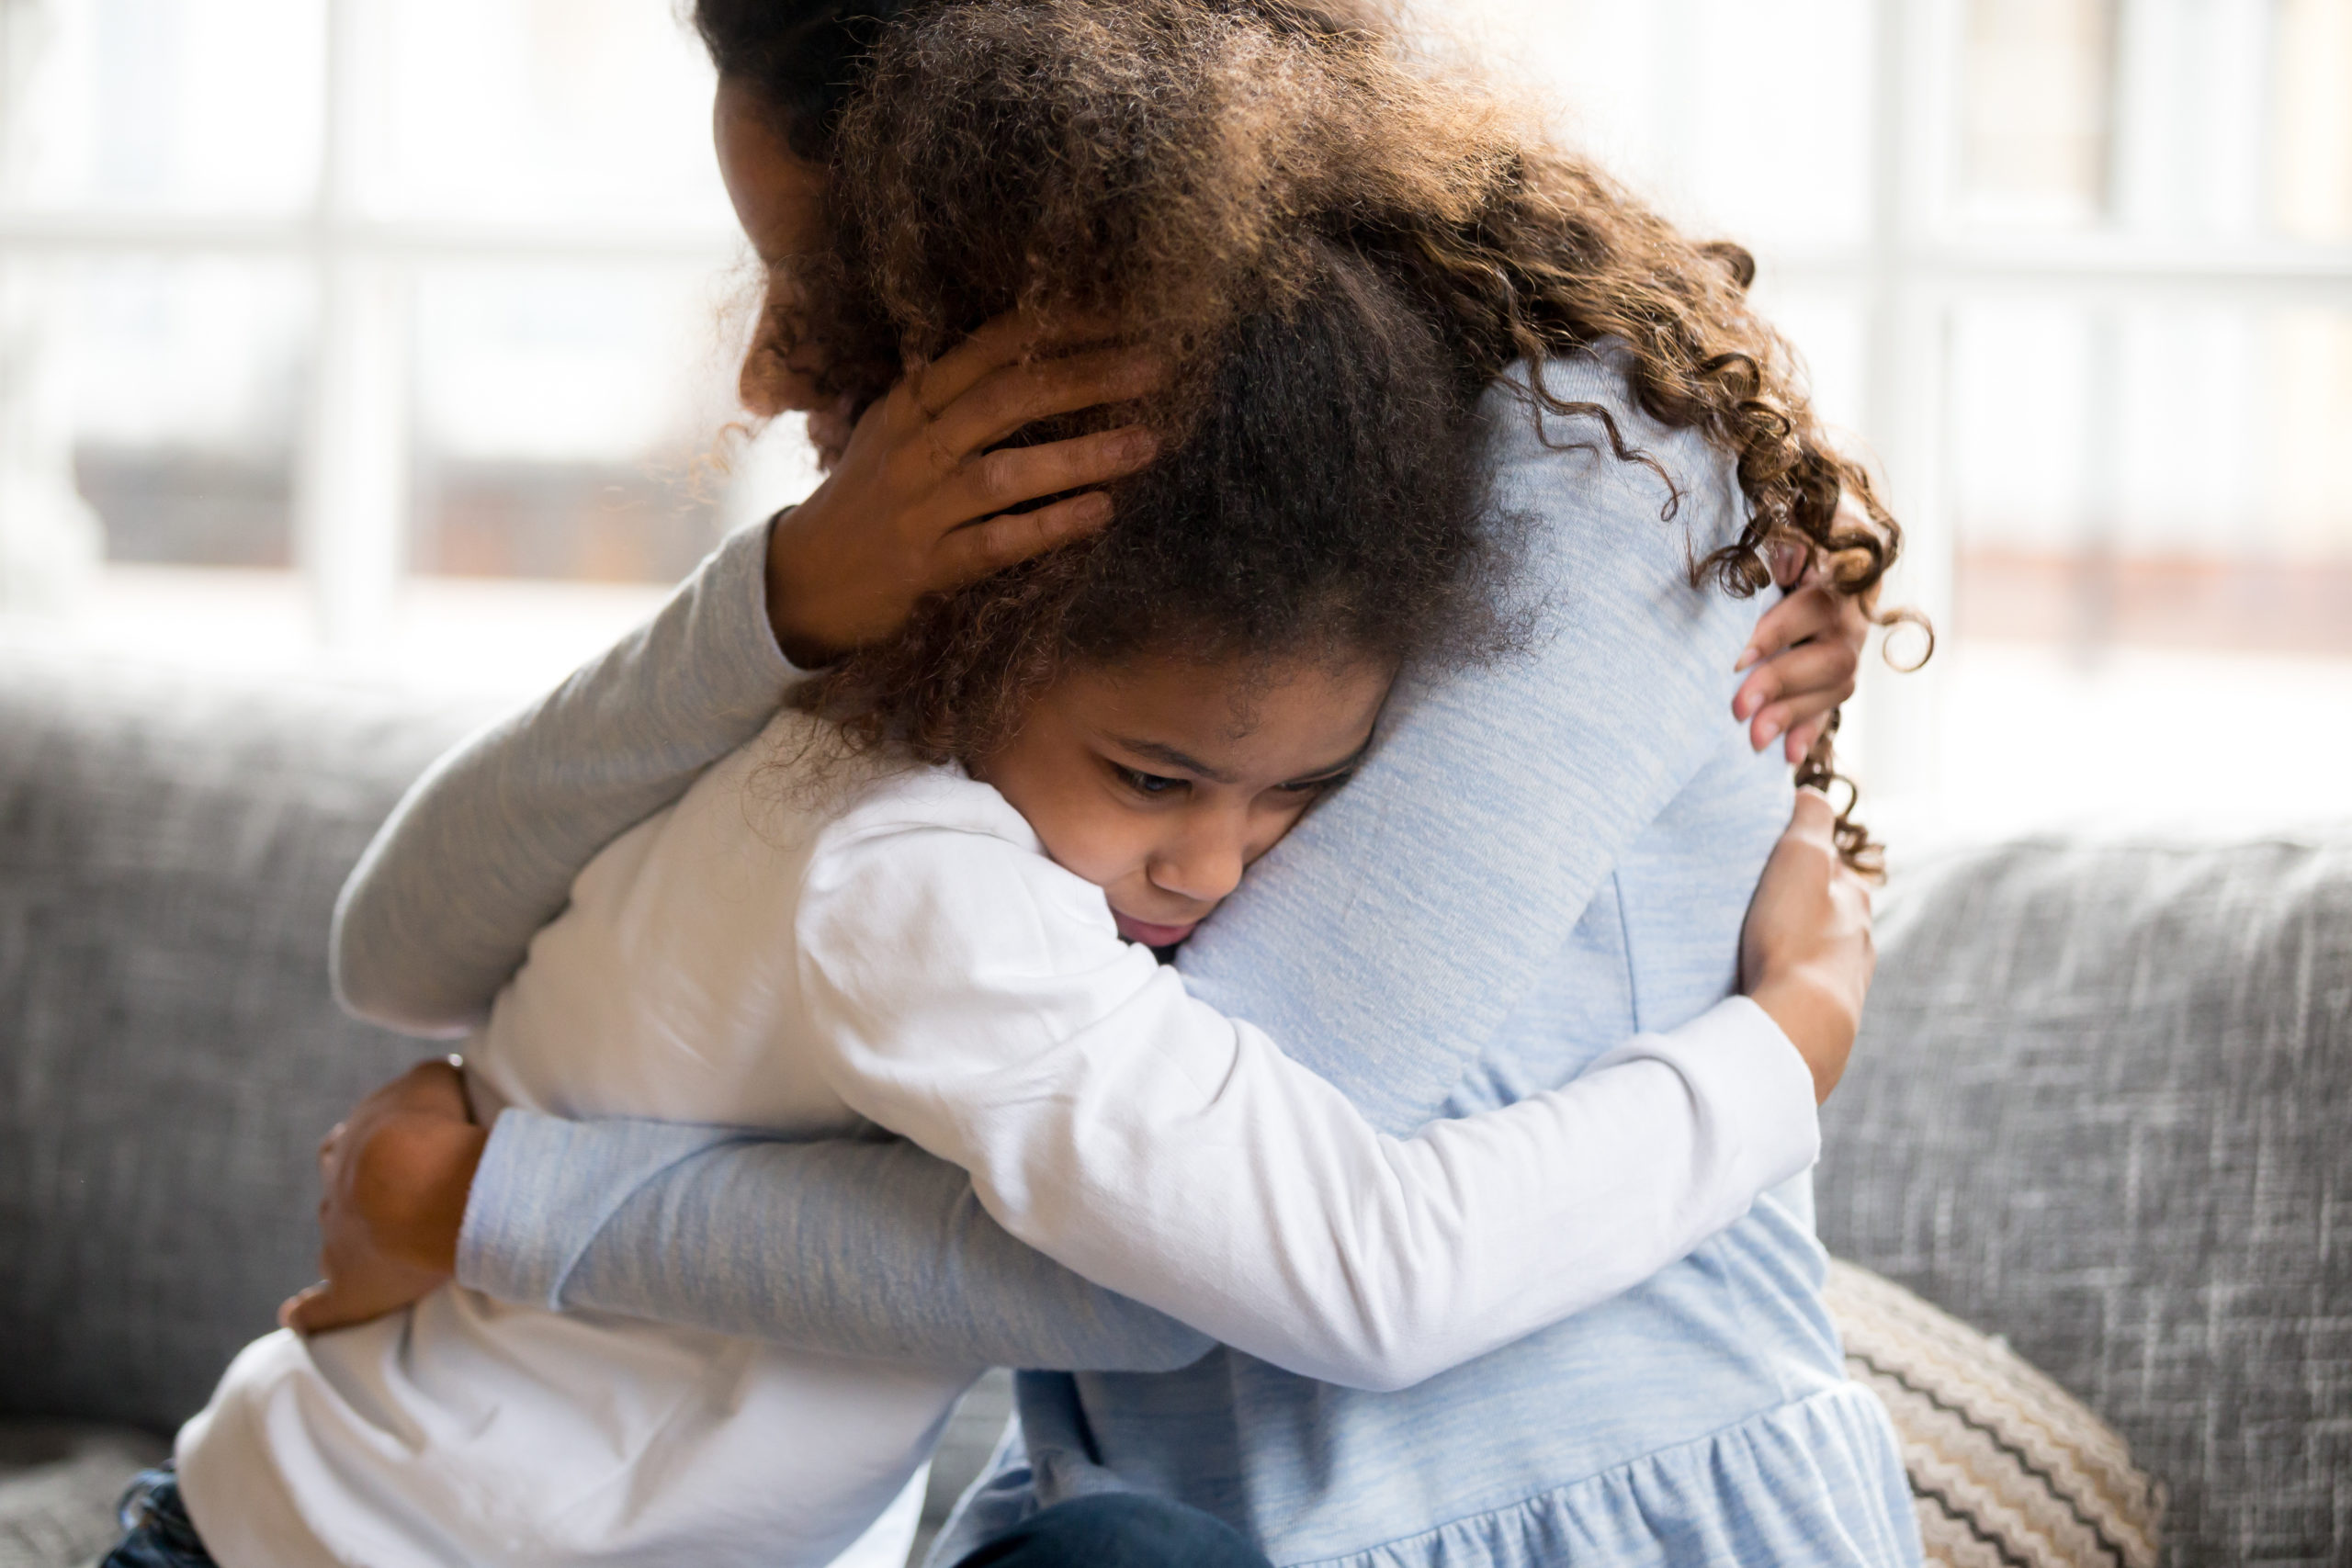 How to Build Resilience in Your Children during the COVID-19 Crisis